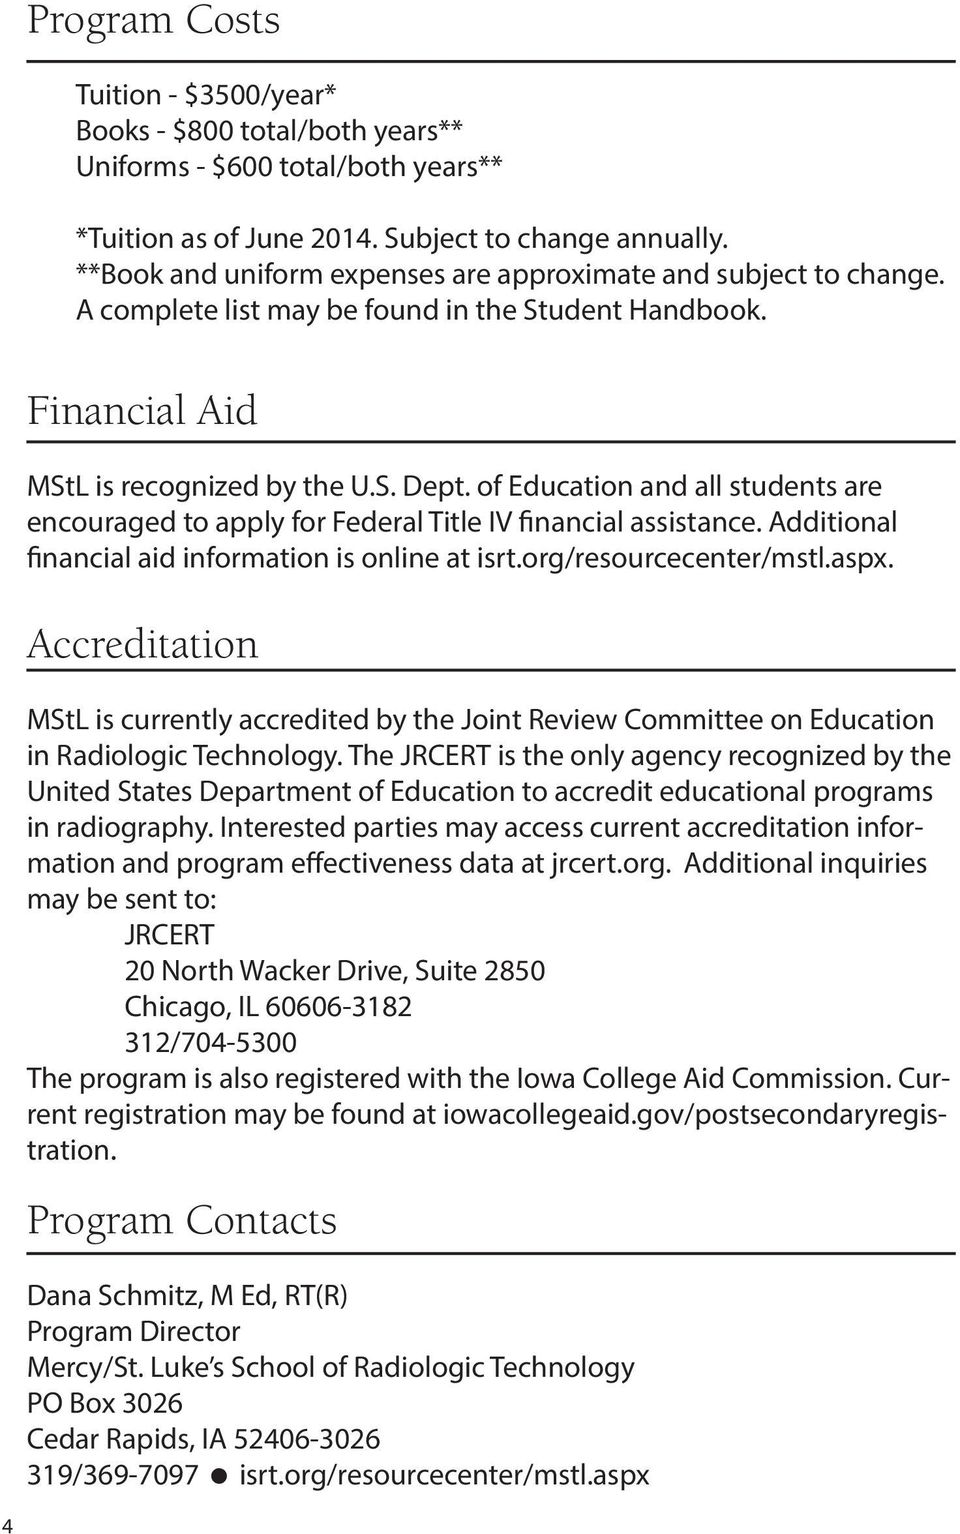 of Education and all students are encouraged to apply for Federal Title IV financial assistance. Additional financial aid information is online at isrt.org/resourcecenter/mstl.aspx.